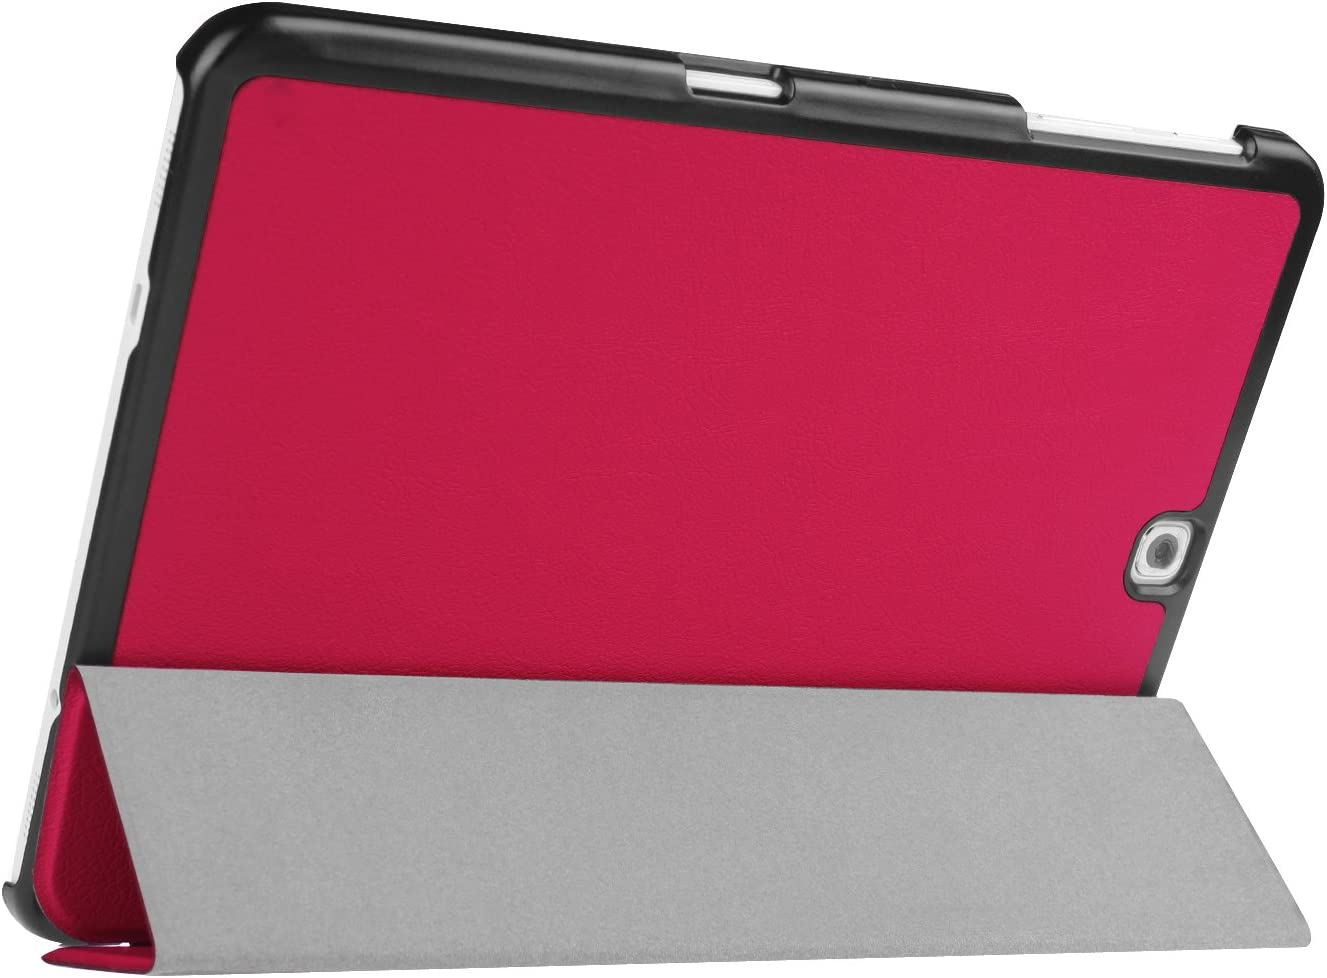 Orange Aidinar Samsung Galaxy Tab S2 9.7 Case Ultra Slim Lightweight Smart-shell Stand Cover with Smart Cover with Auto Sleep//Wake for Galaxy Tab S2 Tablet . 9.7 inch, SM-T810 T815 T813